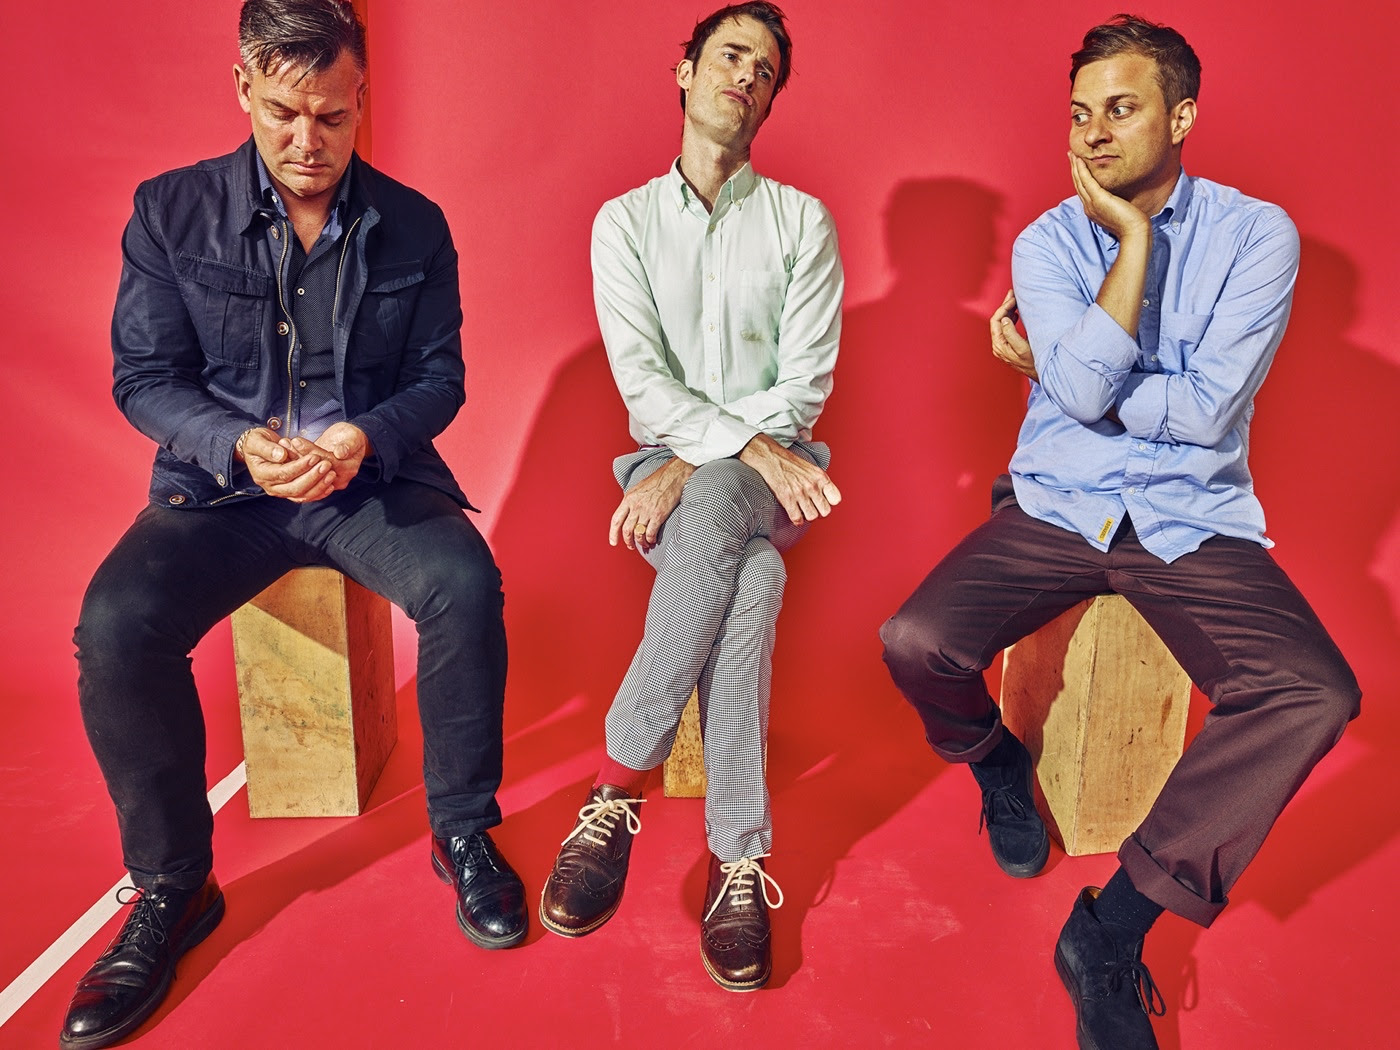 """Battles share their new single for """"The Yabba"""" from their forthcoming full-length release 'LA DI DA DI'."""